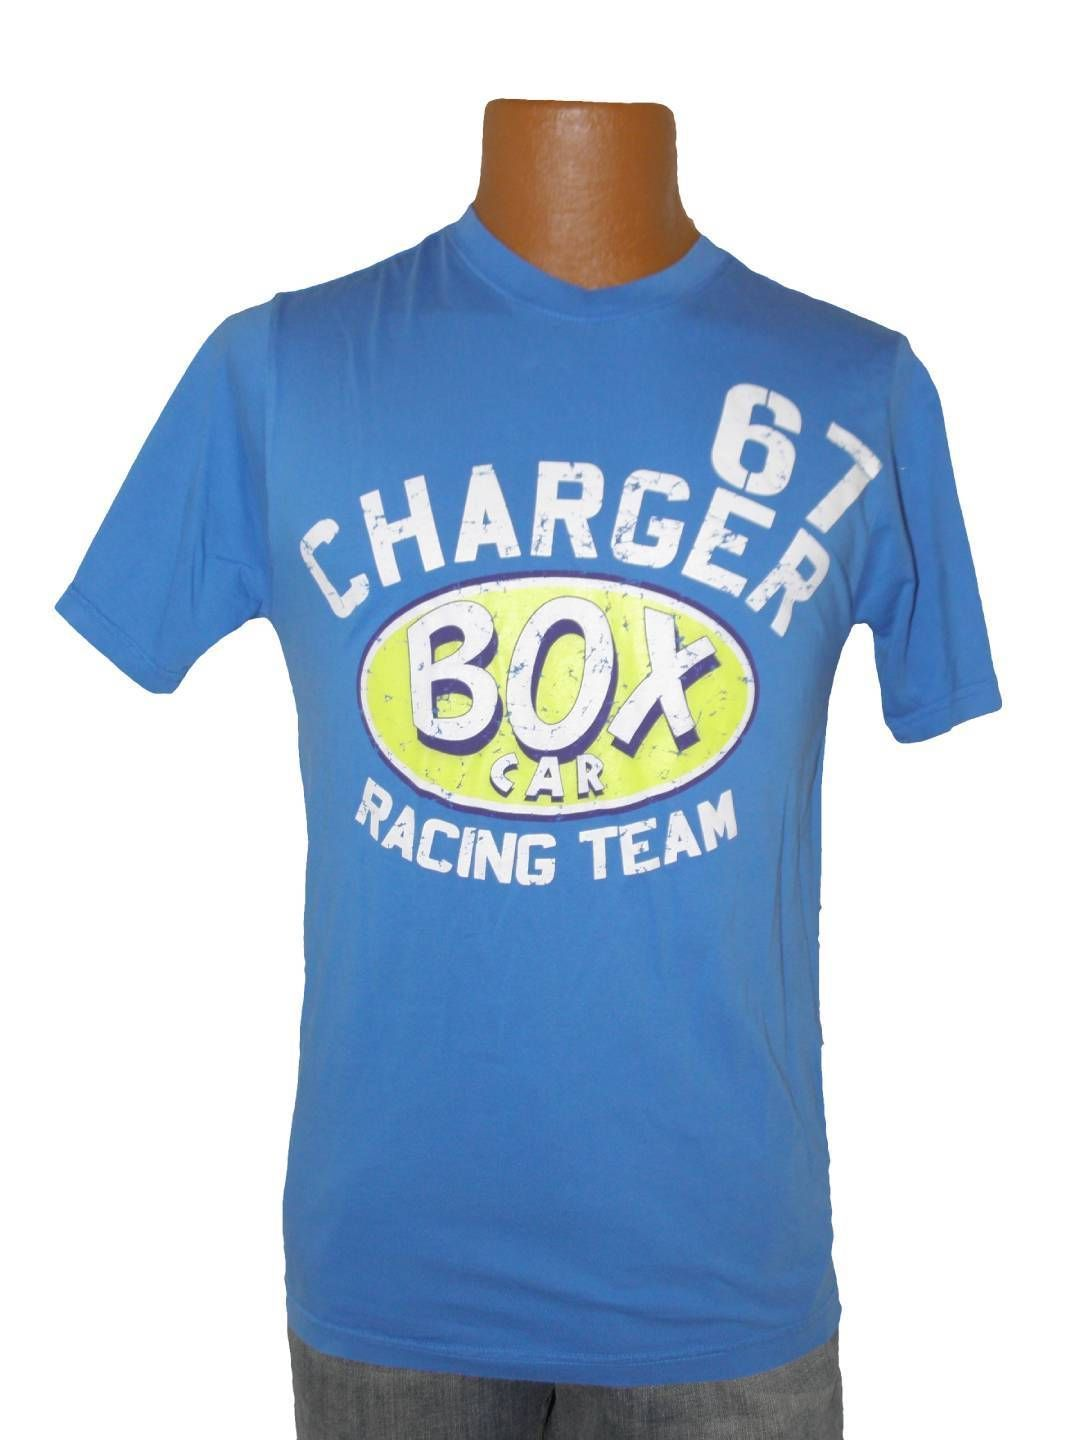 NEW MENS RING OF FIRE VINTAGE BOX CAR RACER TEAM CHARGER 67 TEE T SHIRT S SMALL